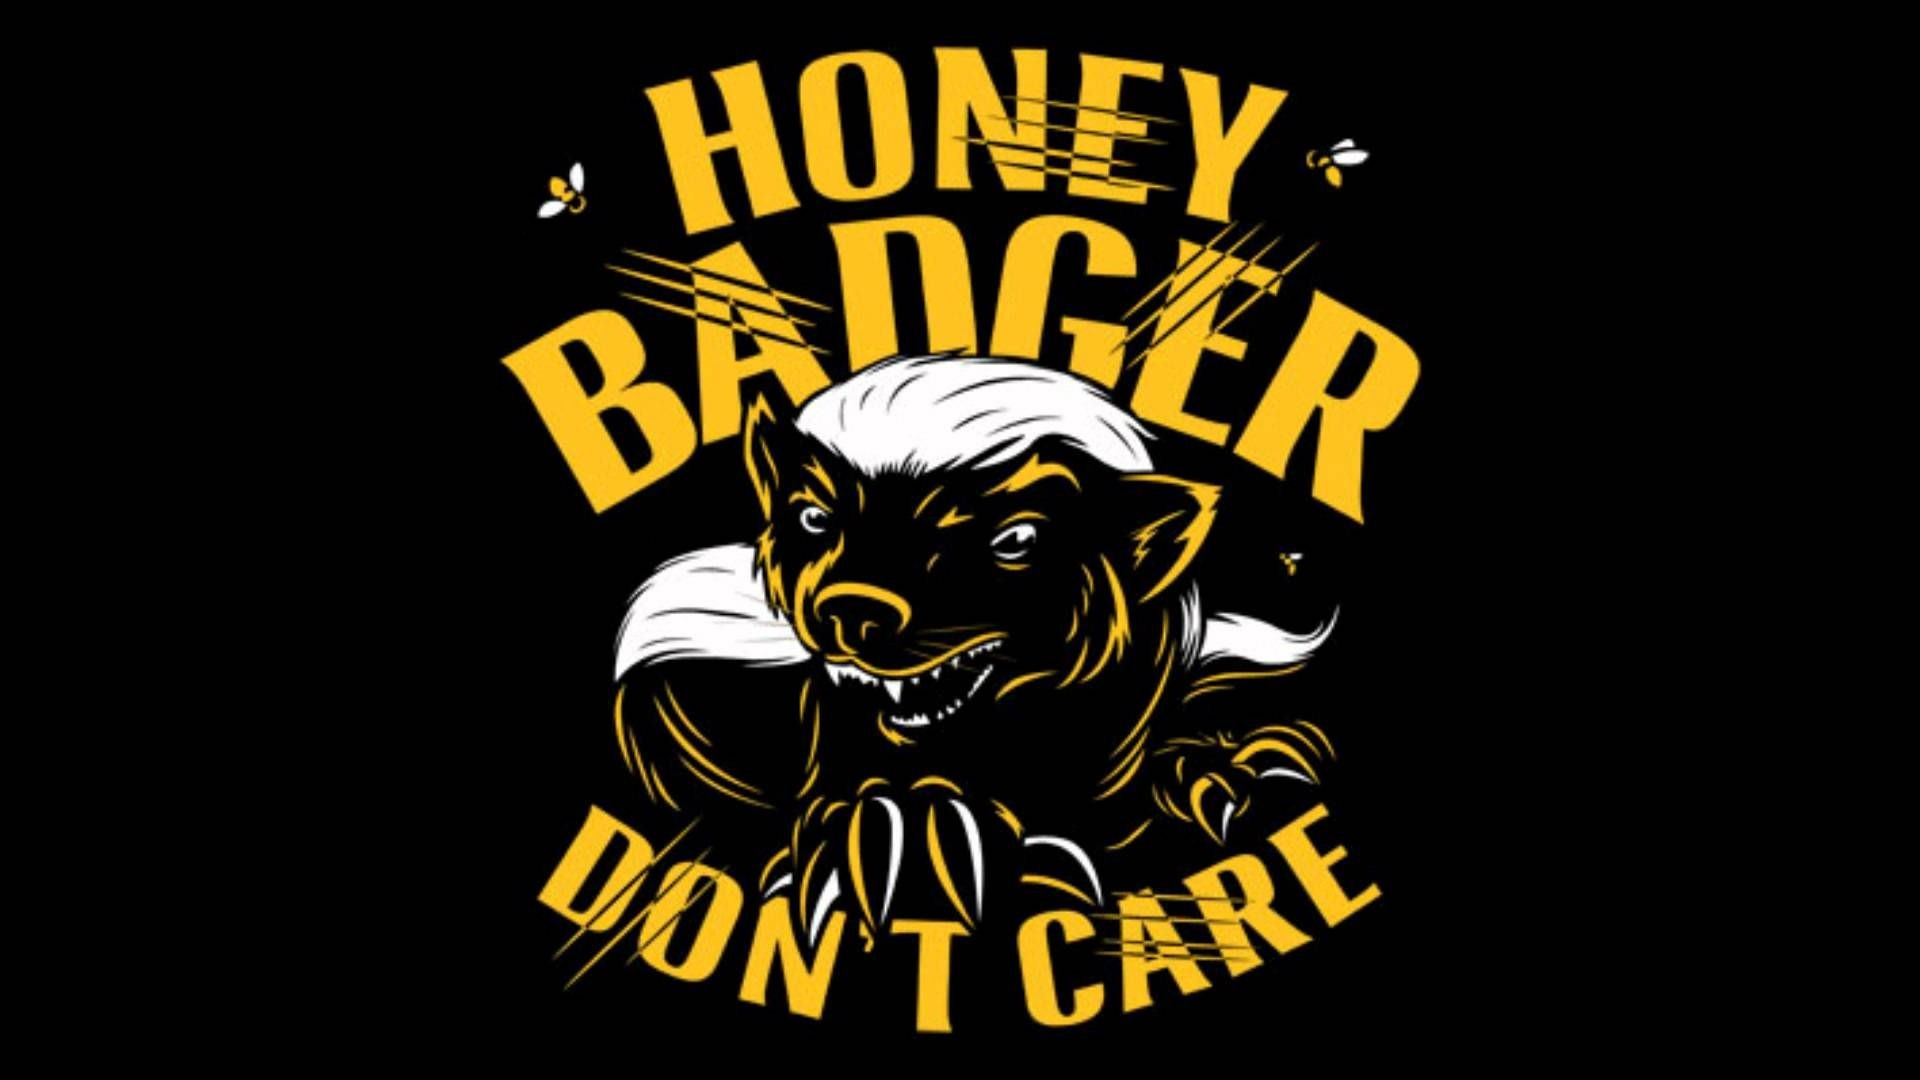 1920x1080 Honey Badger Wallpapers | Honey Badger Backgrounds and .